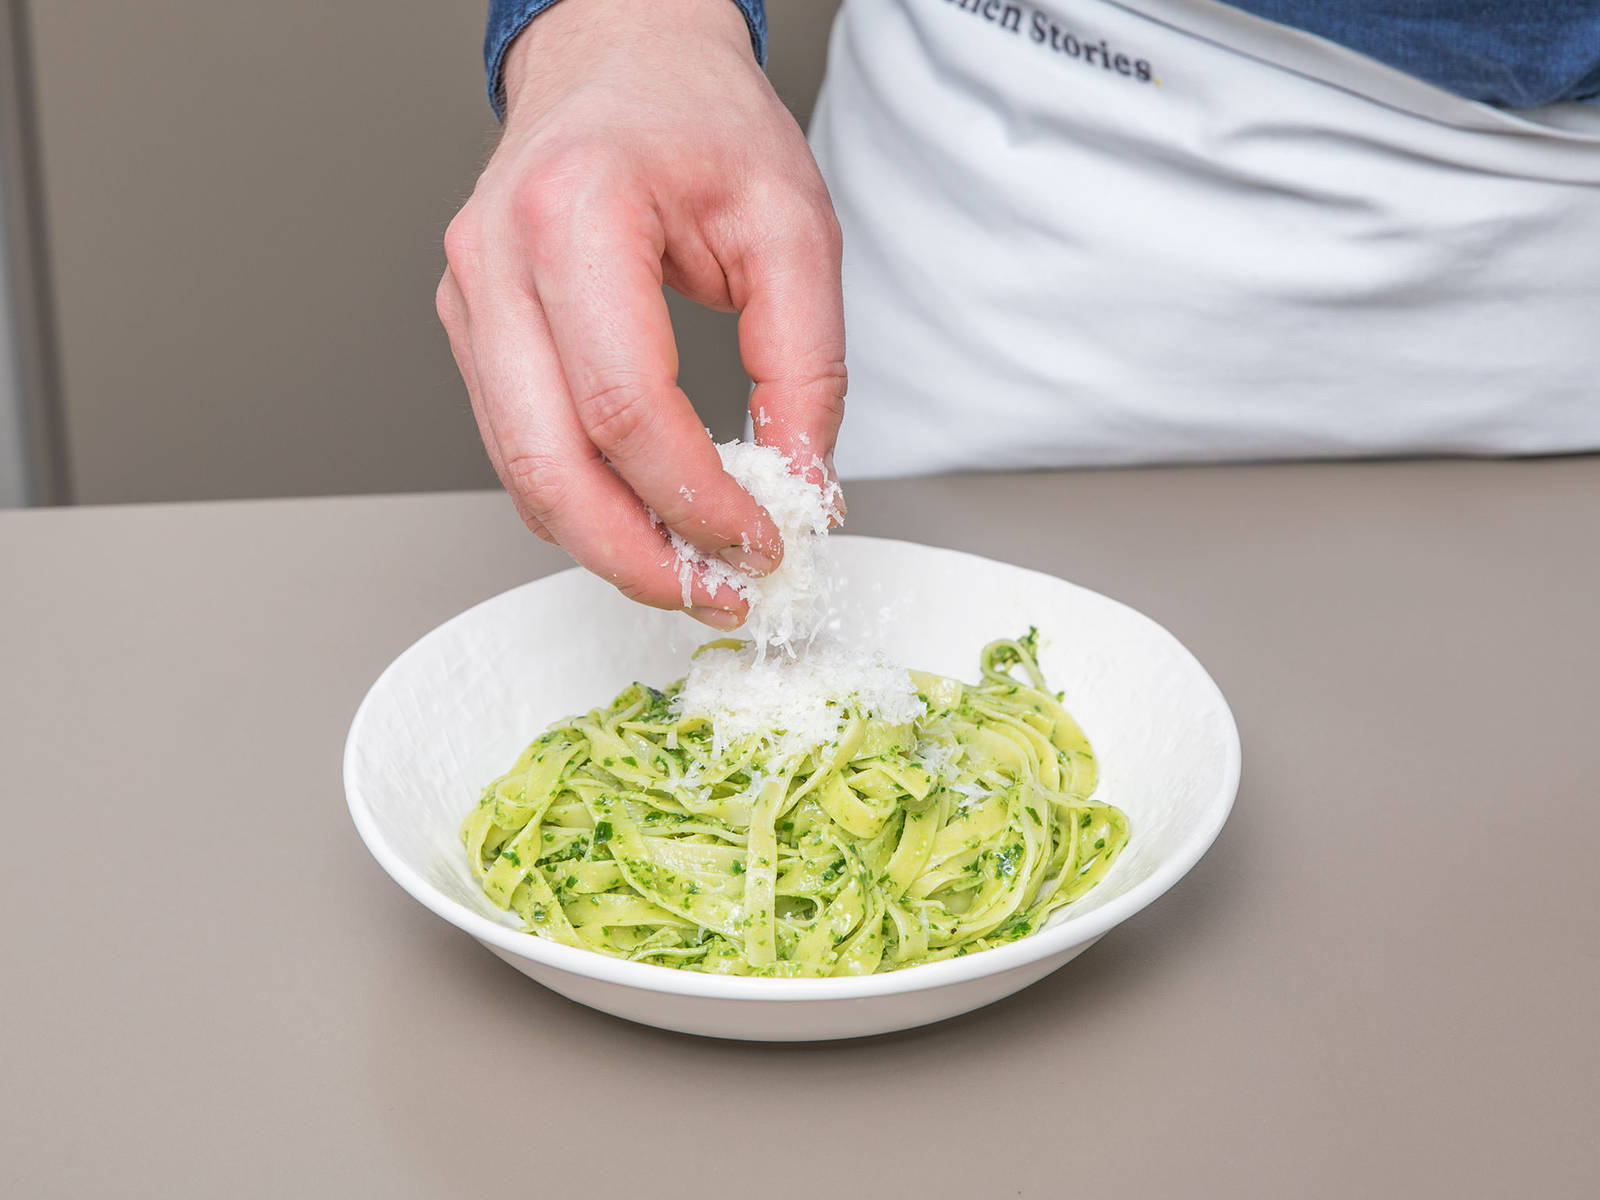 Combine drained tagliatelle with wild garlic pesto. Serve with freshly grated Parmesan cheese and more wild garlic leaves. Enjoy!